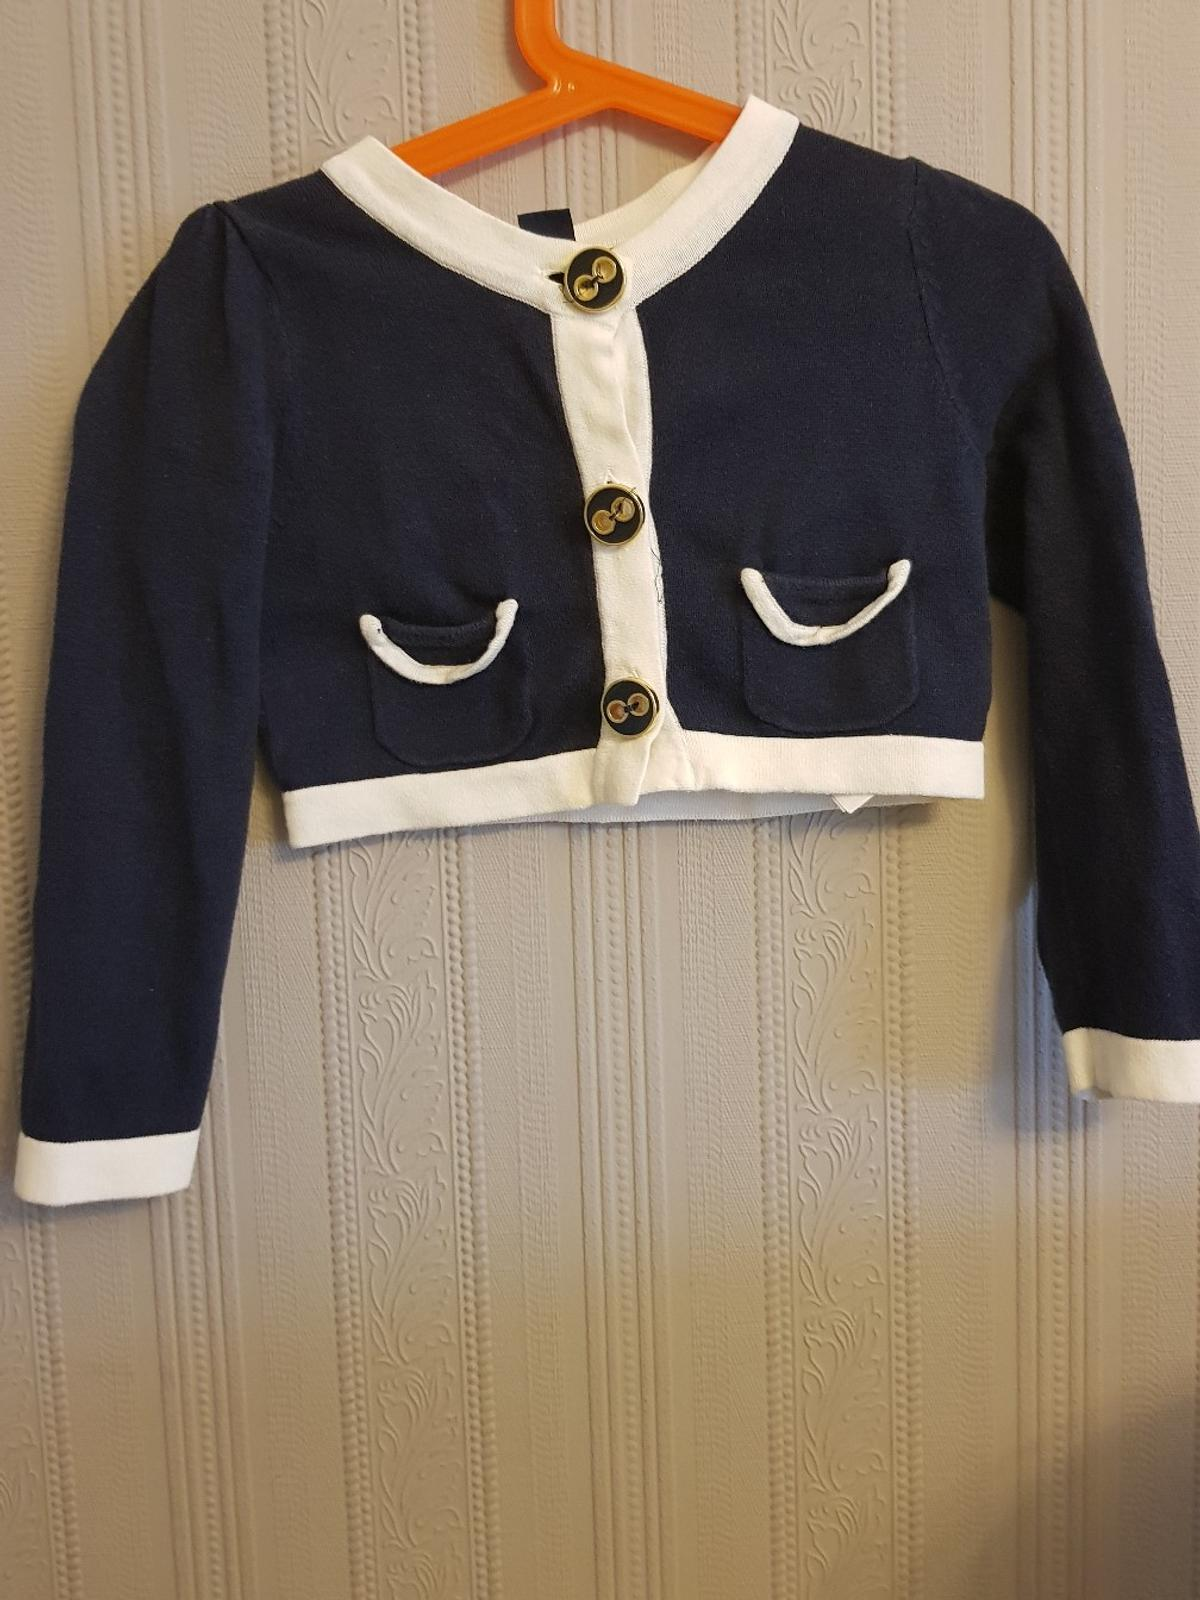 Gap dress and cropped cardigan set (3yrs) in SW19 Merton for